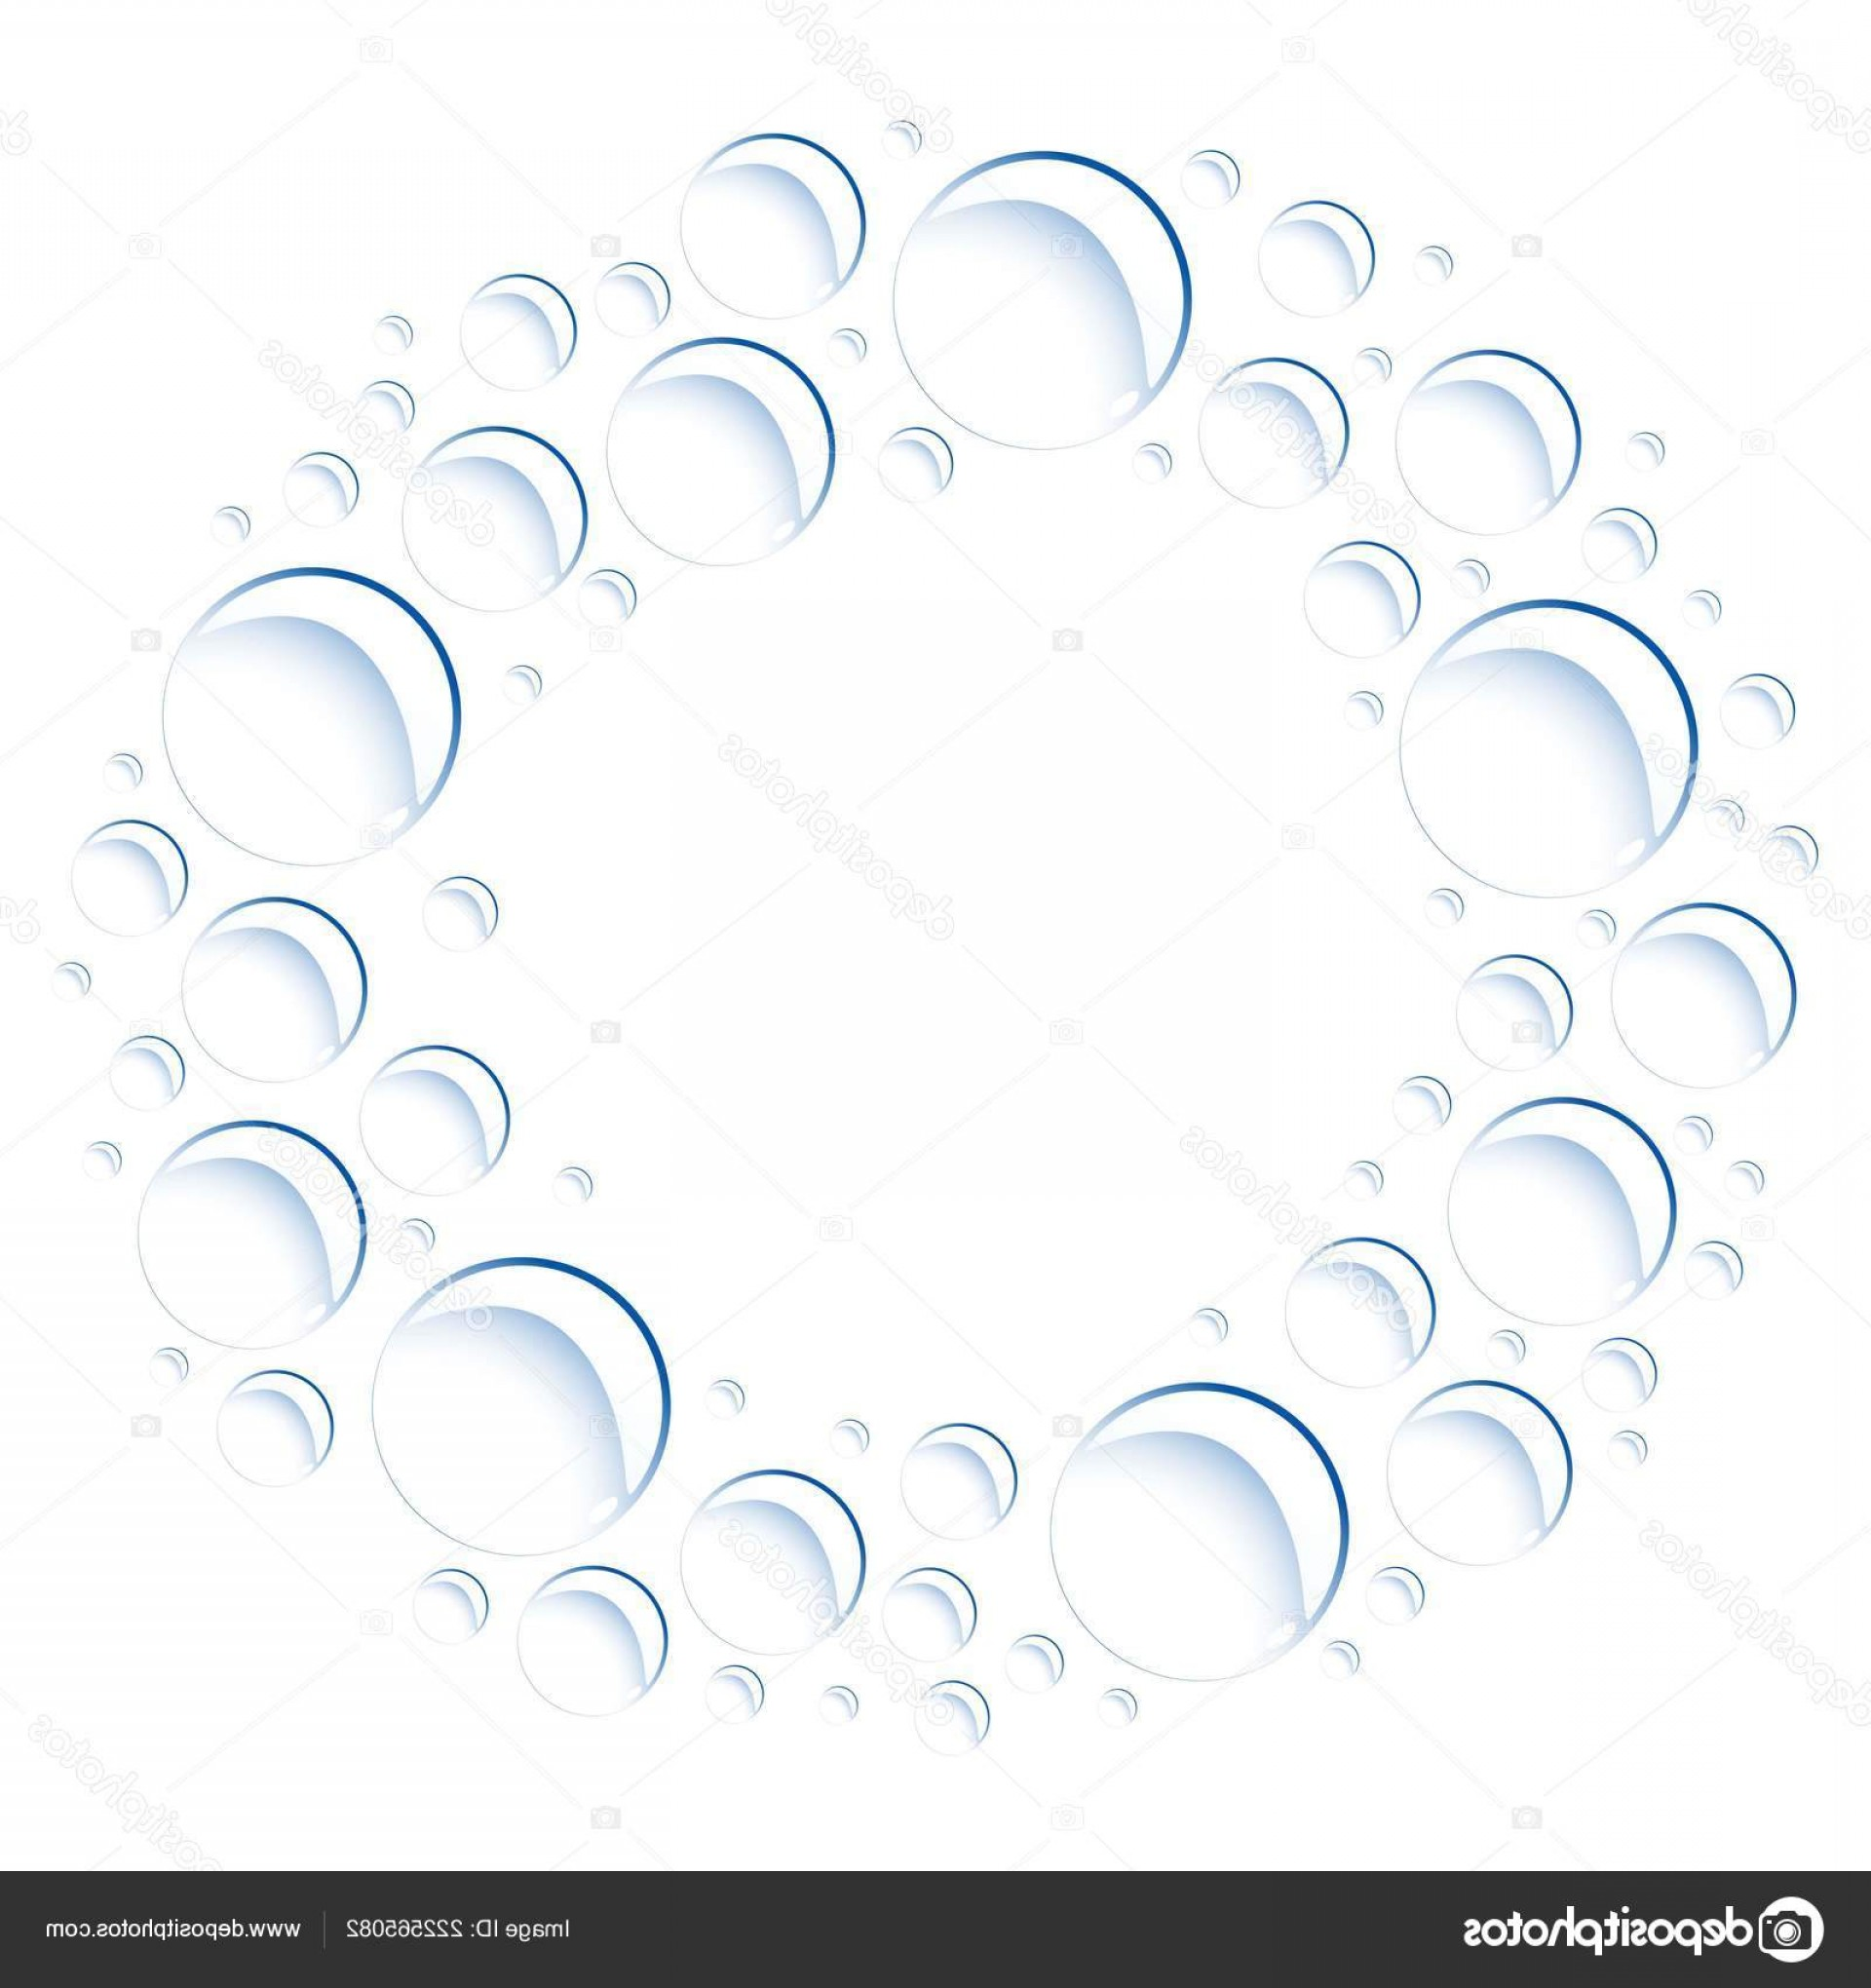 EPS Vector Soap Bubbles: Stock Illustration Soap Bubbles Located Circle Vector